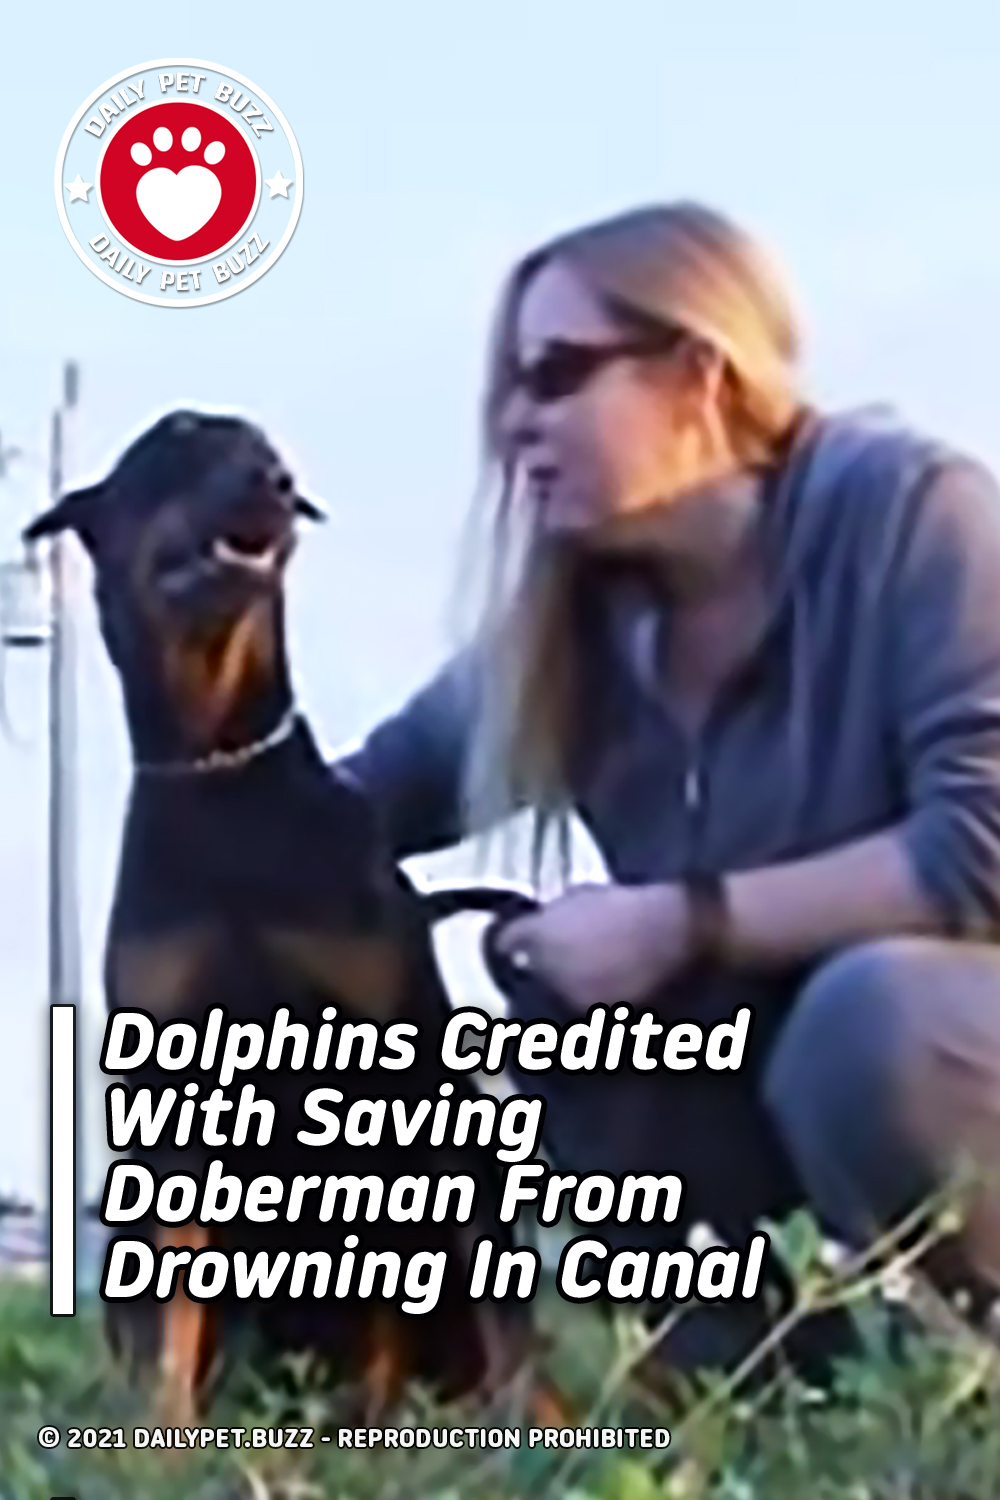 Dolphins Credited With Saving Doberman From Drowning In Canal